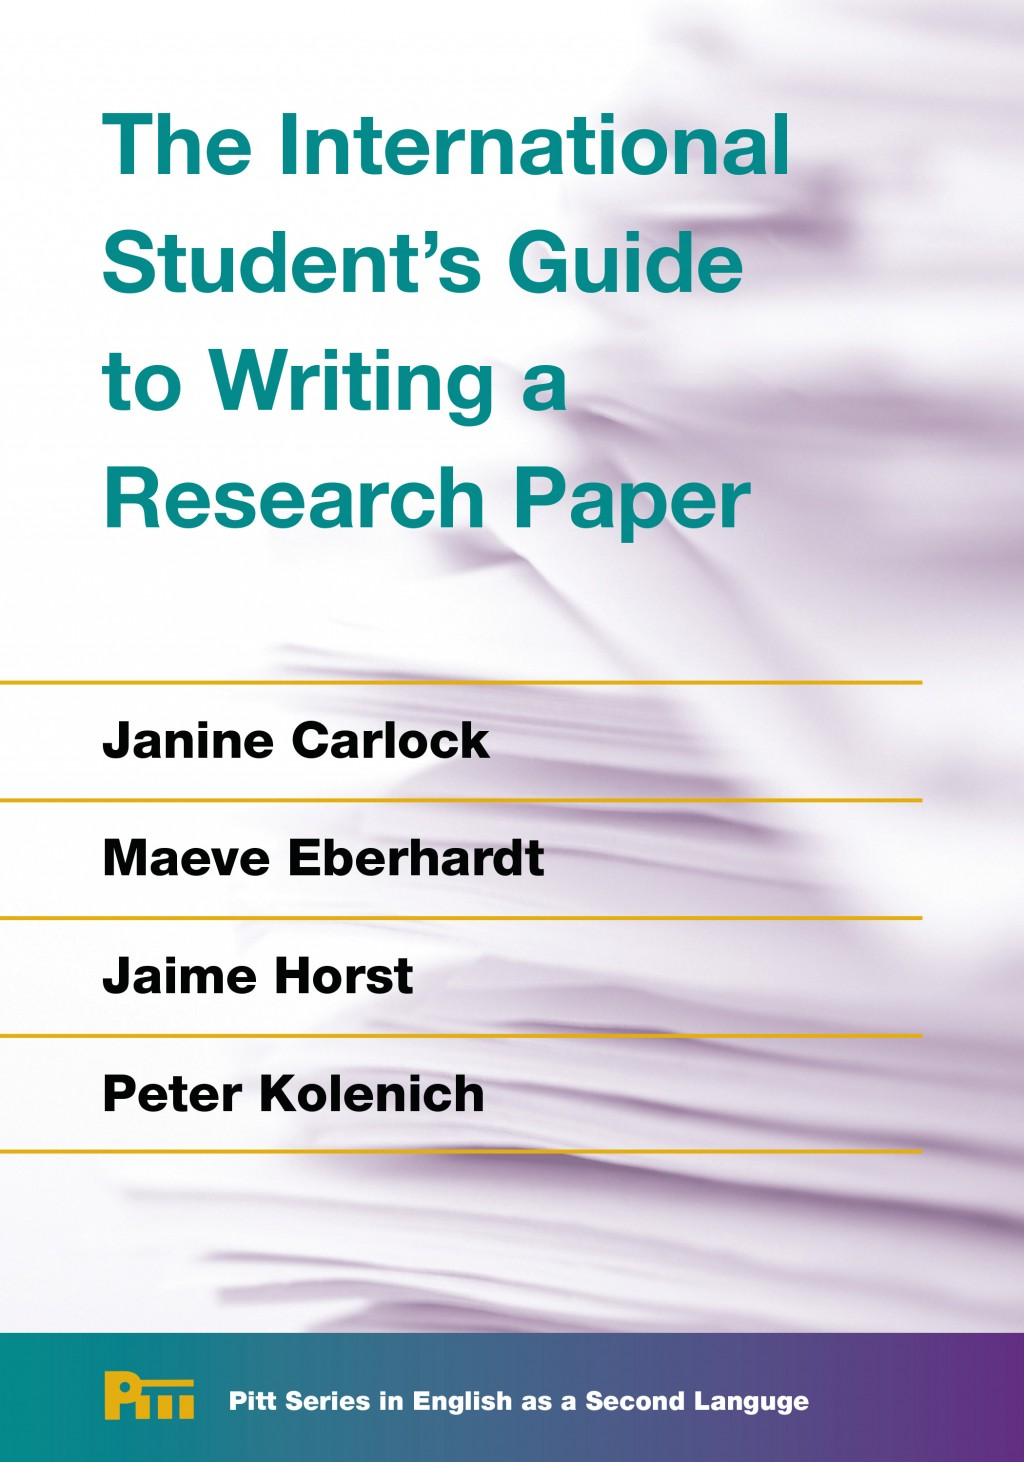 013 Research Paper Striking Writing Papers A Complete Guide 16th Edition Pdf James D Lester Outline Large